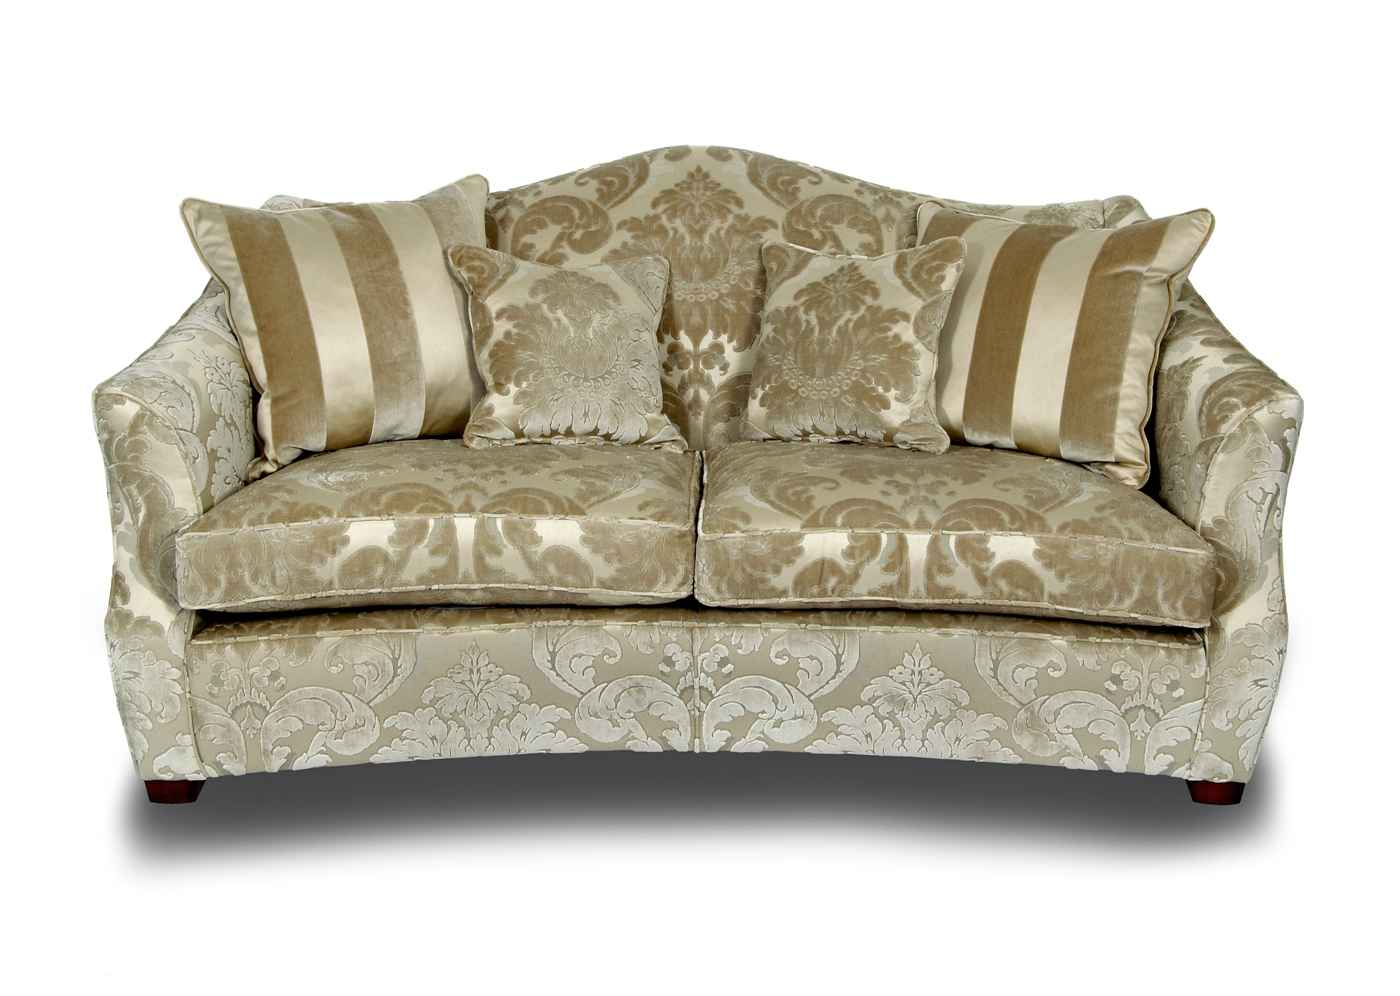 Inexpensive Sofas For Small Spaces Cheap Loveseats For Small Spaces Couch And Sofa Ideas